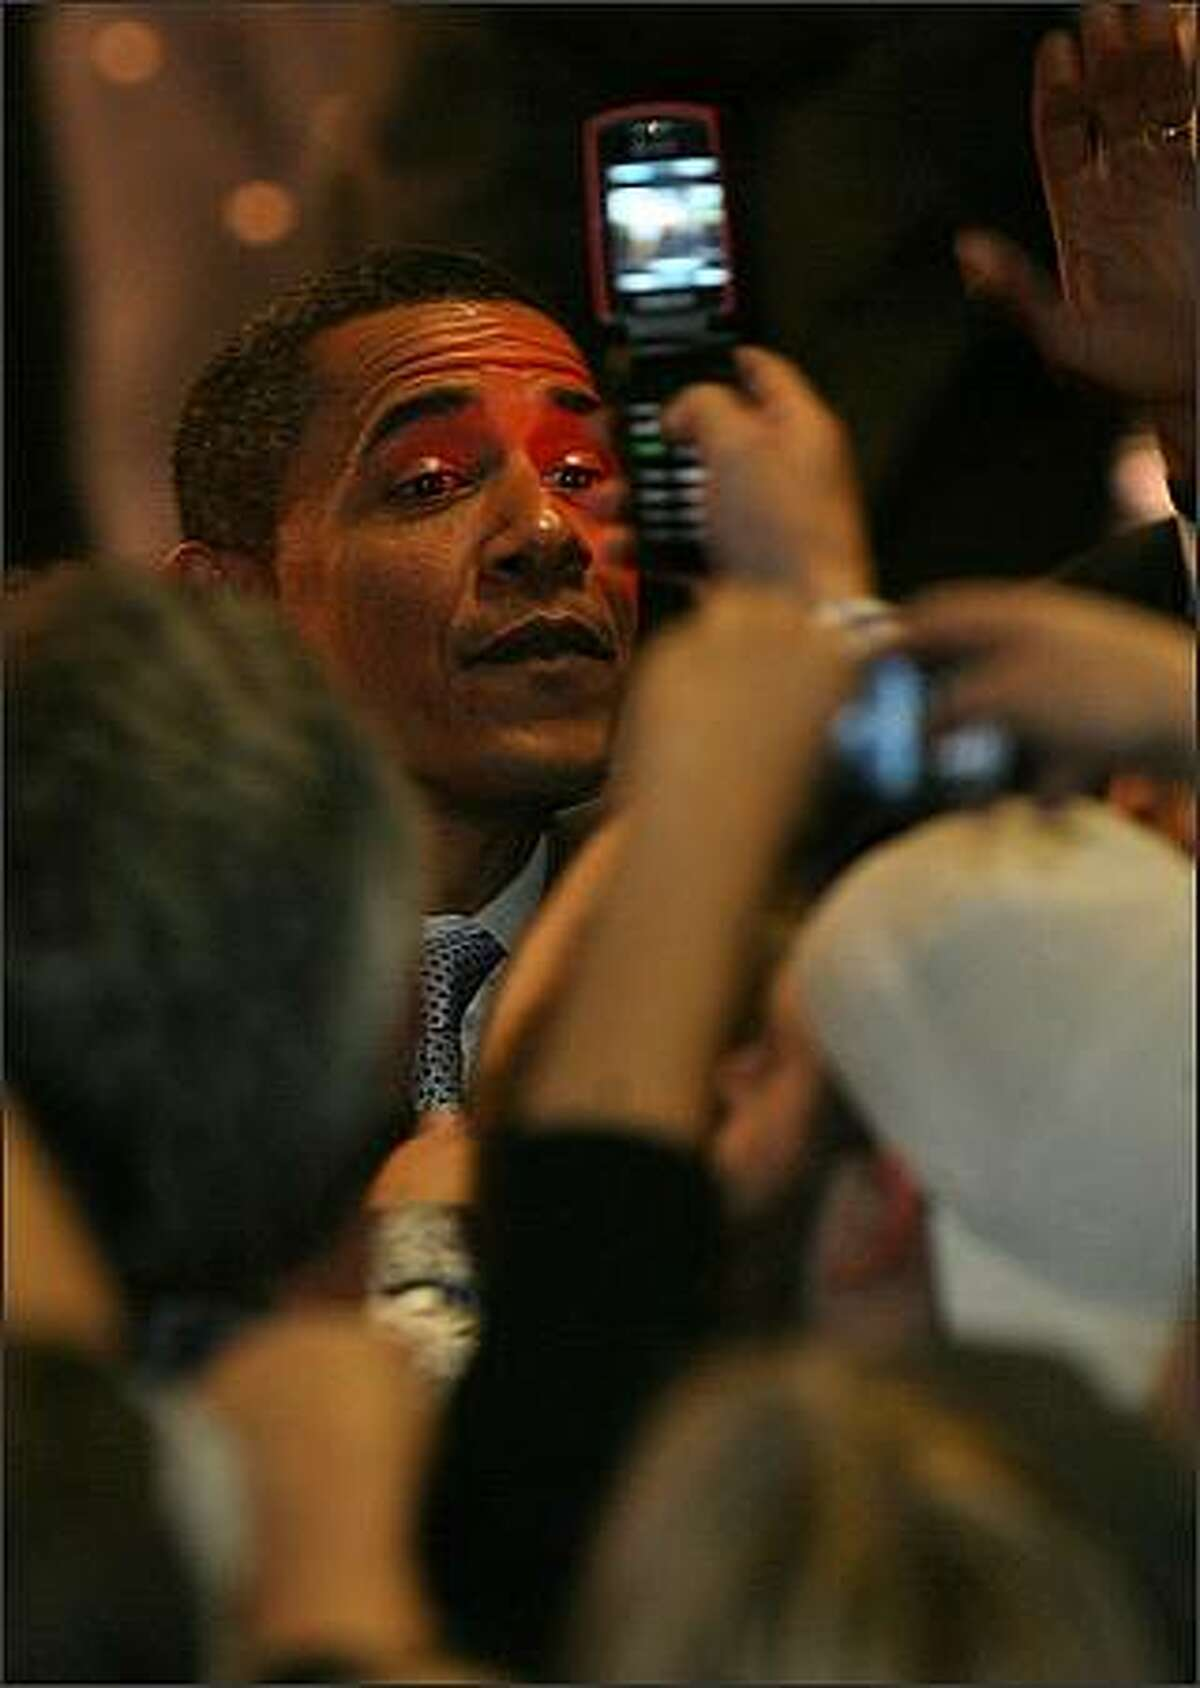 Tuesday Dec. 11, 2007. Sen. Barack Obama is illuminated by a camera phone as he shakes hands with the audience after speaking at a fundraising event held at the Showbox Sodo club in Seattle.